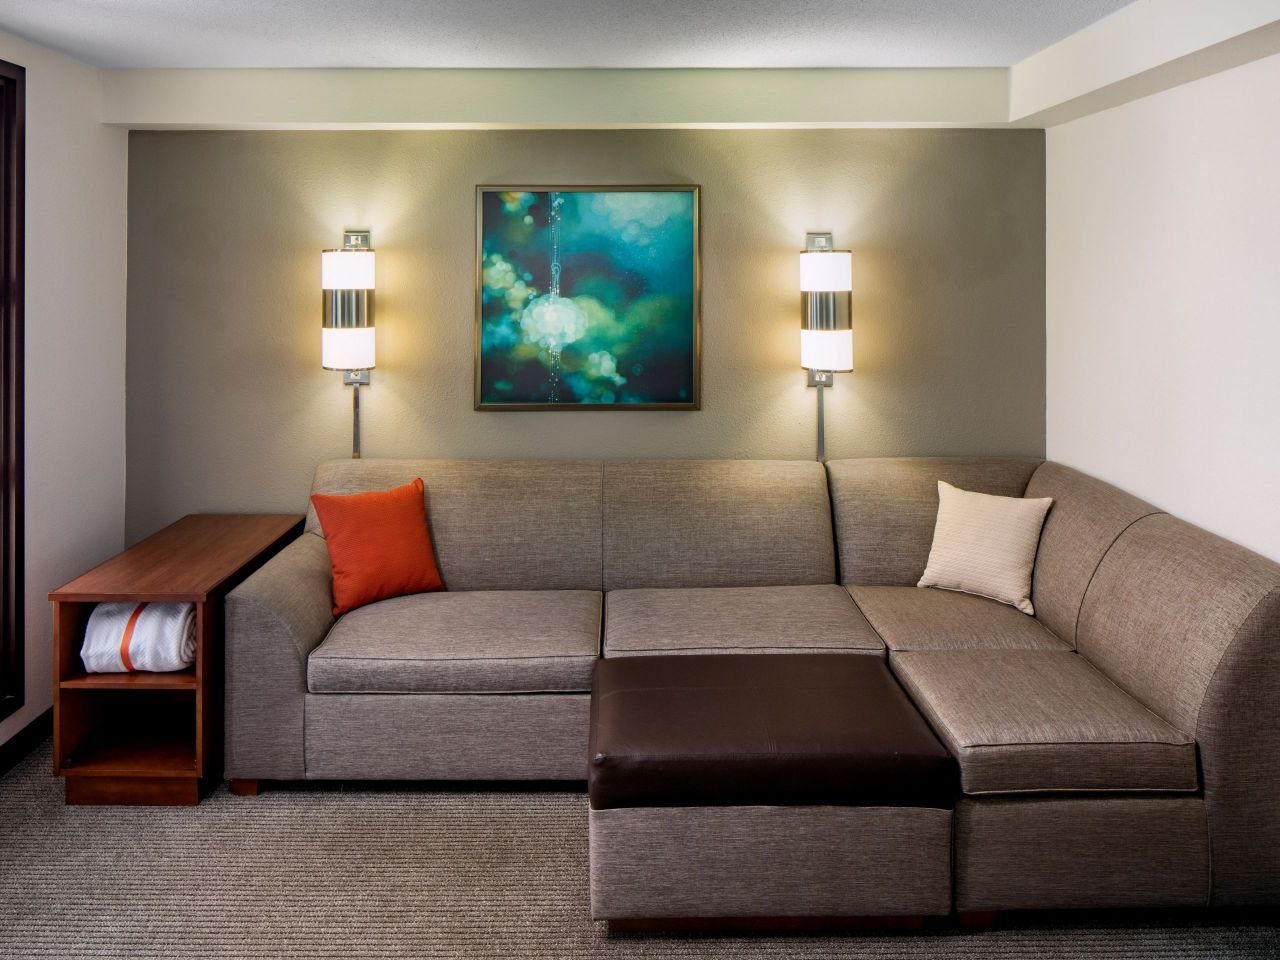 Sofa Express Pineville Nc Cozy Hotel Near Carowinds In Charlotte Nc Hyatt Place Charlotte